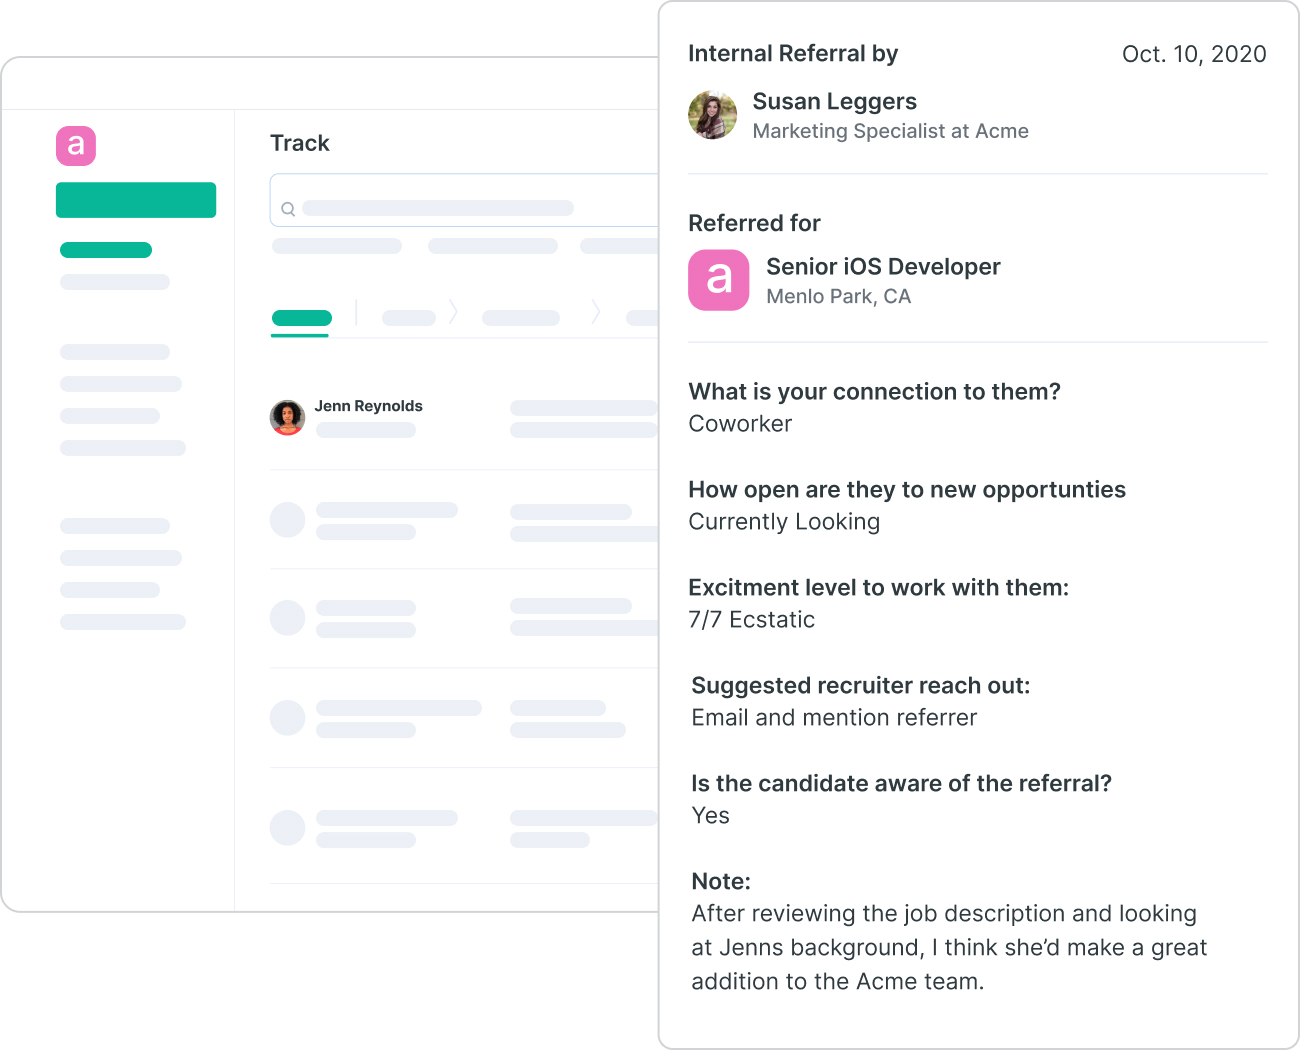 Image of employee referral form in Slack